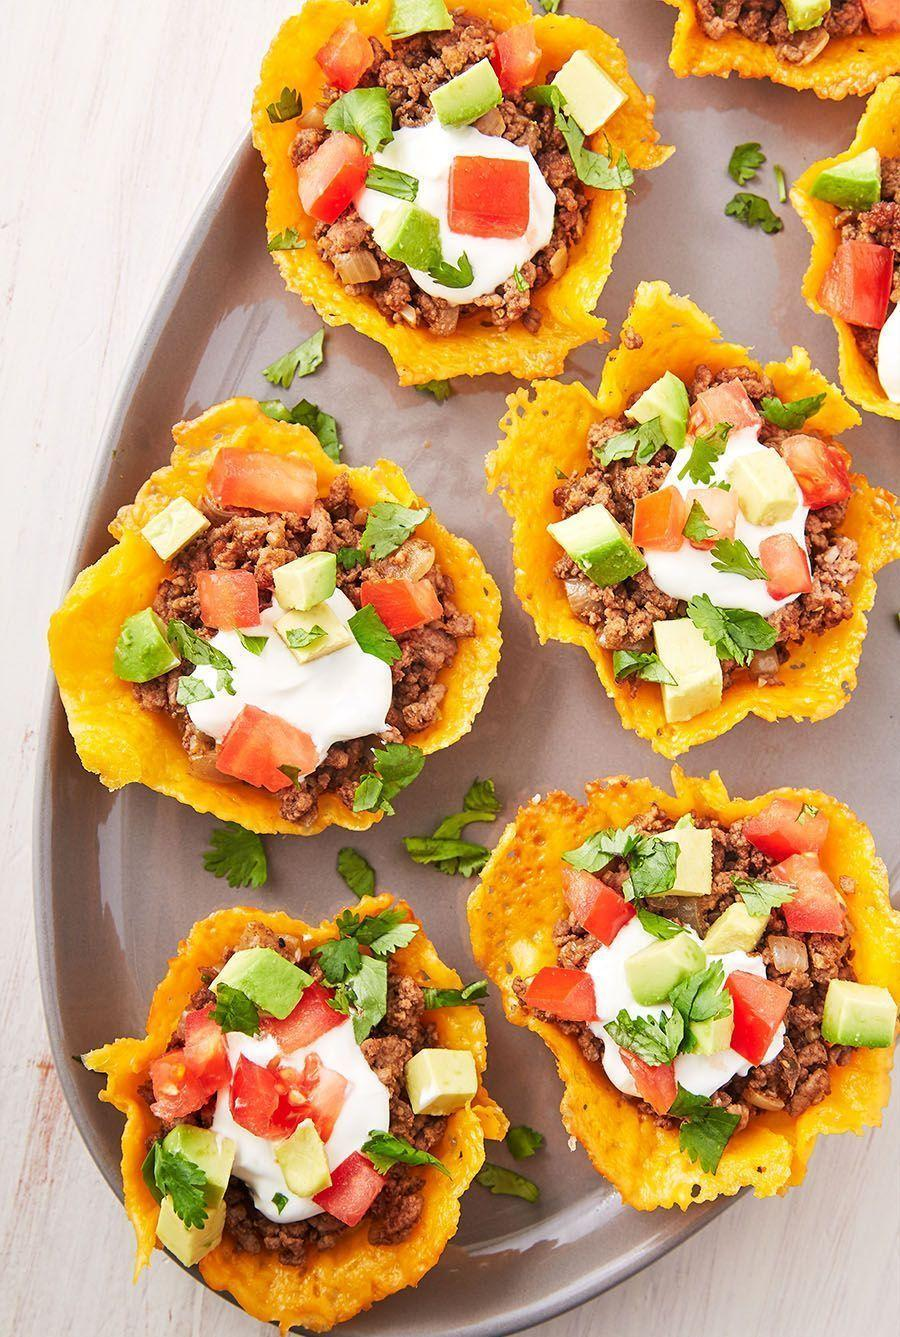 """<p><a href=""""https://www.delish.com/uk/cooking/recipes/a30291829/keto-taco-casserole-recipe/"""" rel=""""nofollow noopener"""" target=""""_blank"""" data-ylk=""""slk:Taco"""" class=""""link rapid-noclick-resp"""">Taco</a> shells made out of cheese is the ultimate Keto hack. These cups are so easy to make! </p><p>Get the <a href=""""https://www.delish.com/uk/cooking/recipes/a30712335/keto-taco-cups-recipe/"""" rel=""""nofollow noopener"""" target=""""_blank"""" data-ylk=""""slk:Keto Taco Cups"""" class=""""link rapid-noclick-resp"""">Keto Taco Cups</a> recipe.</p>"""